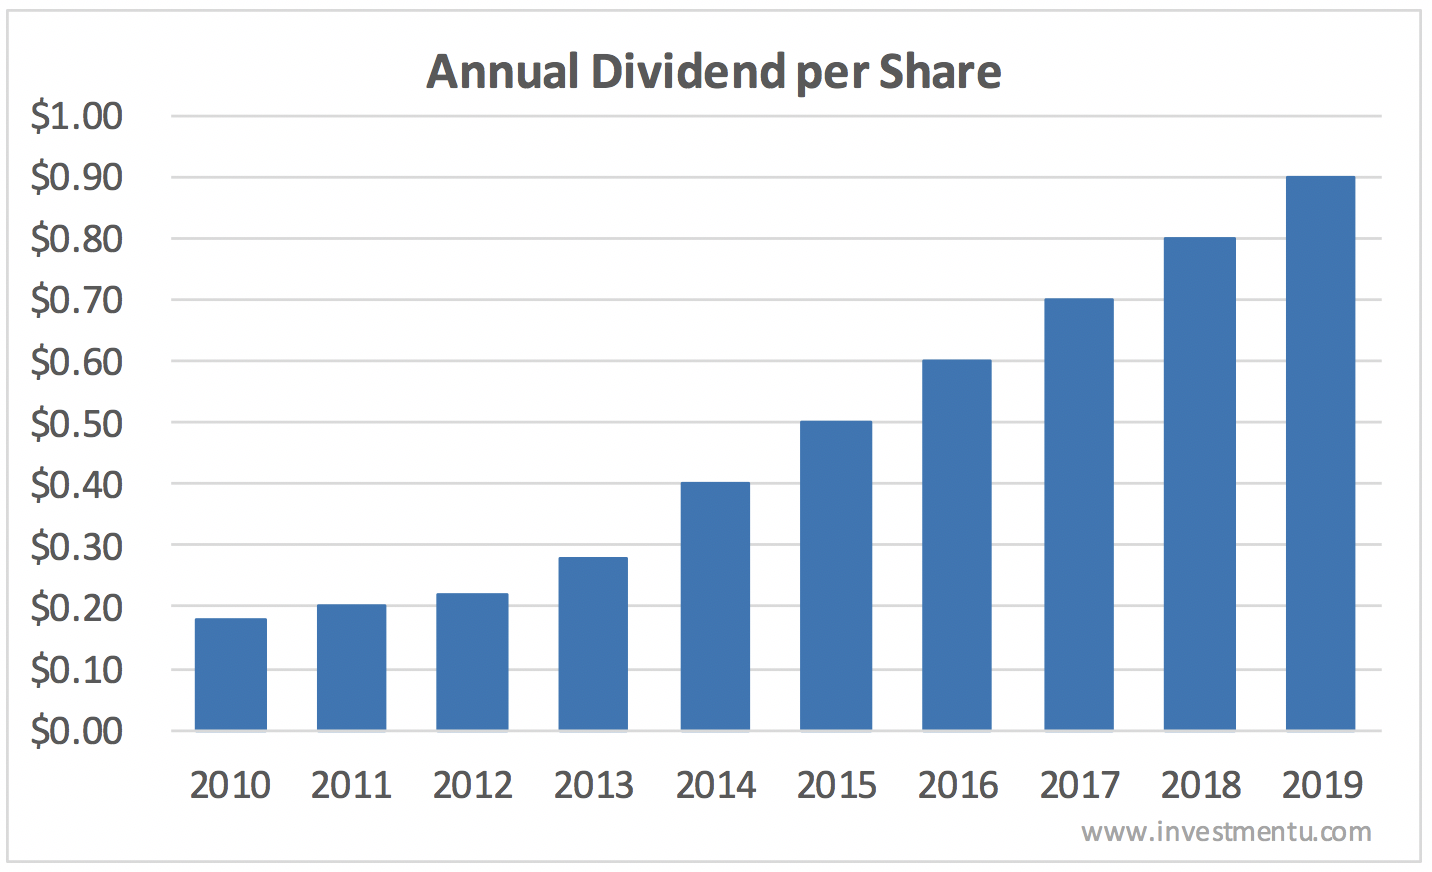 Toro stock forecast by looking at past dividend history